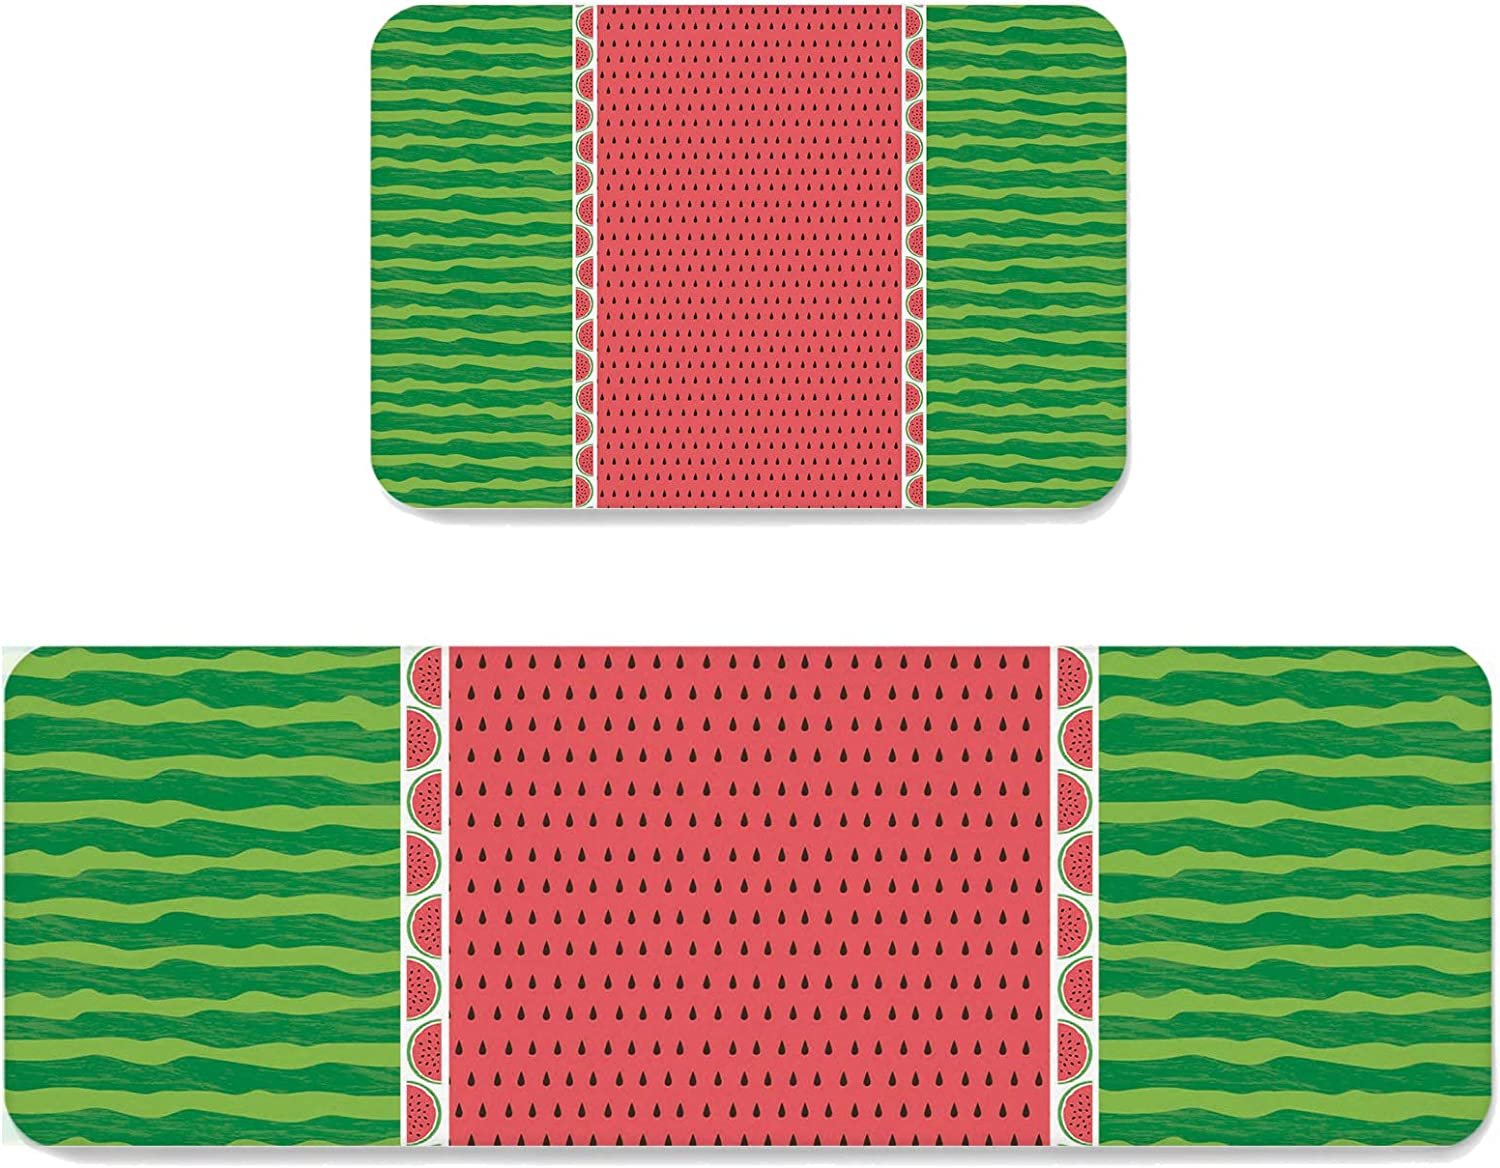 Watermelon Rind Stripe Kitchen Mat Set Cushioned 2 OFFicial store Anti-Fatig Max 46% OFF of